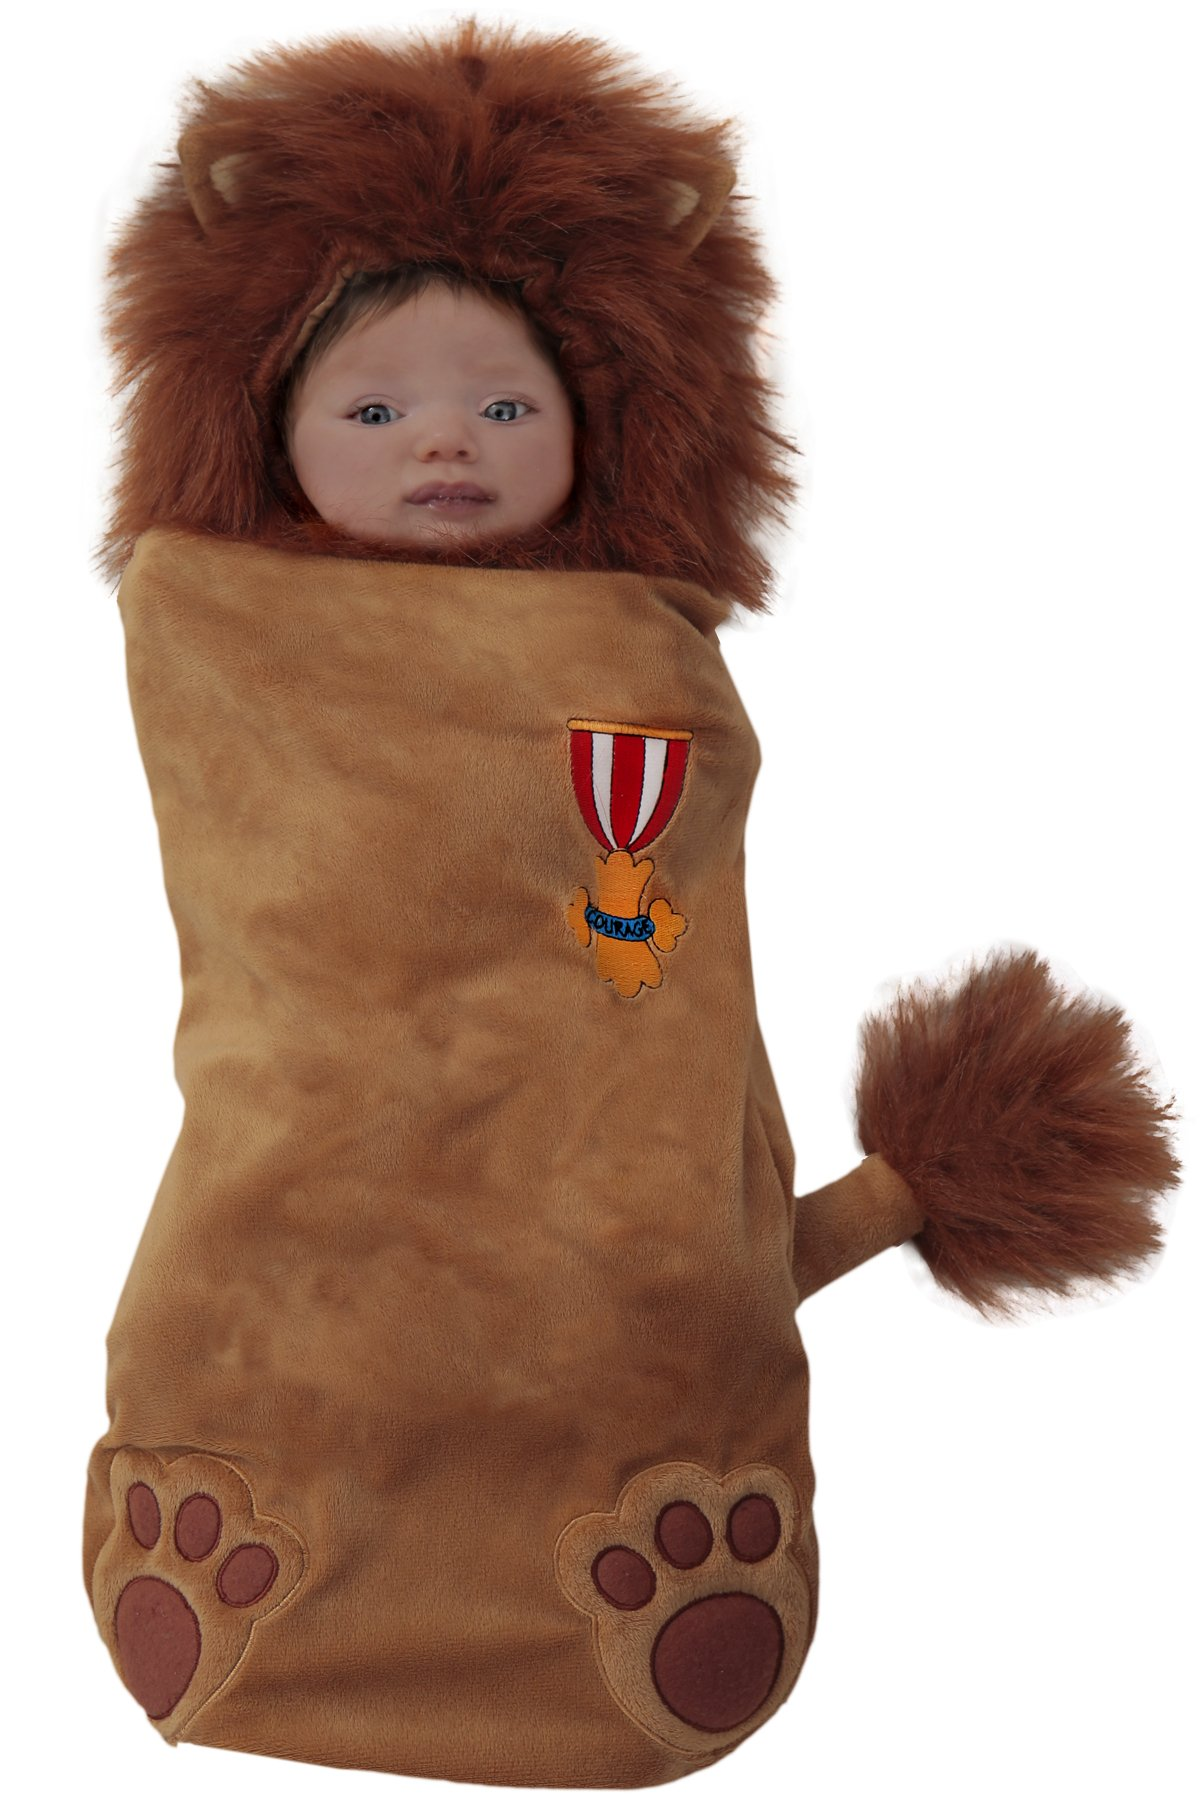 Princess Paradise Baby's The Wizard of oz Deluxe Cowardly Lion Swaddle Costume, As Shown, 0/3M